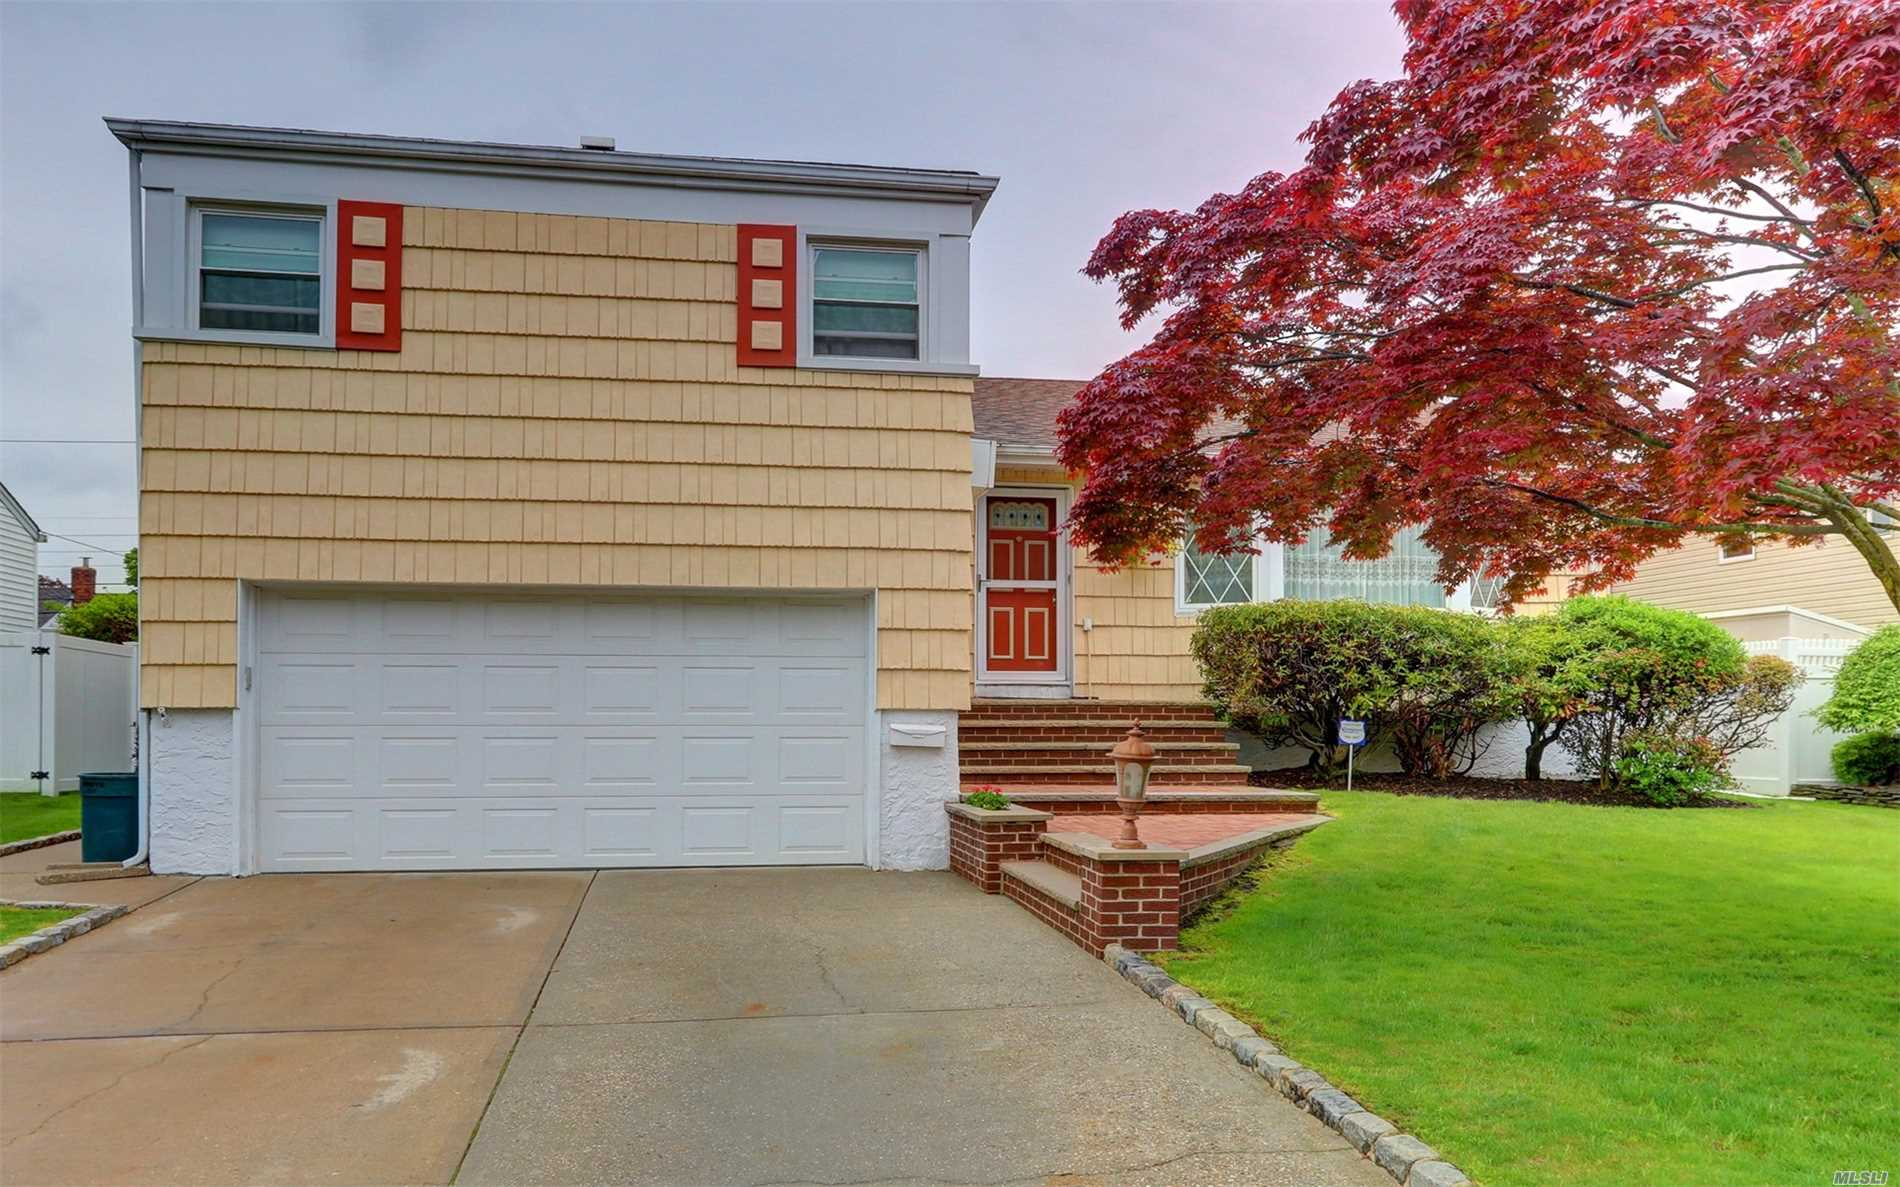 This Is A Very Large Well-Maintained Split In Plainedge School District. Rooms Are All Very Big And It Does Have 4 Levels, Full Basement W/ Wet Bar, Newer Windows, Roof, Gas Burner And Water Tank, 200 Amp Electric. Beautifully Manicured Backyard, Shed(Gift), Ag Pool(Gift) Nice Size Den/Office Sliders To Patio, Good Size Master/ Family Bath Has Tub W/Jets, Big Attic All Floored With Electric. Mrs Clean Lives Here